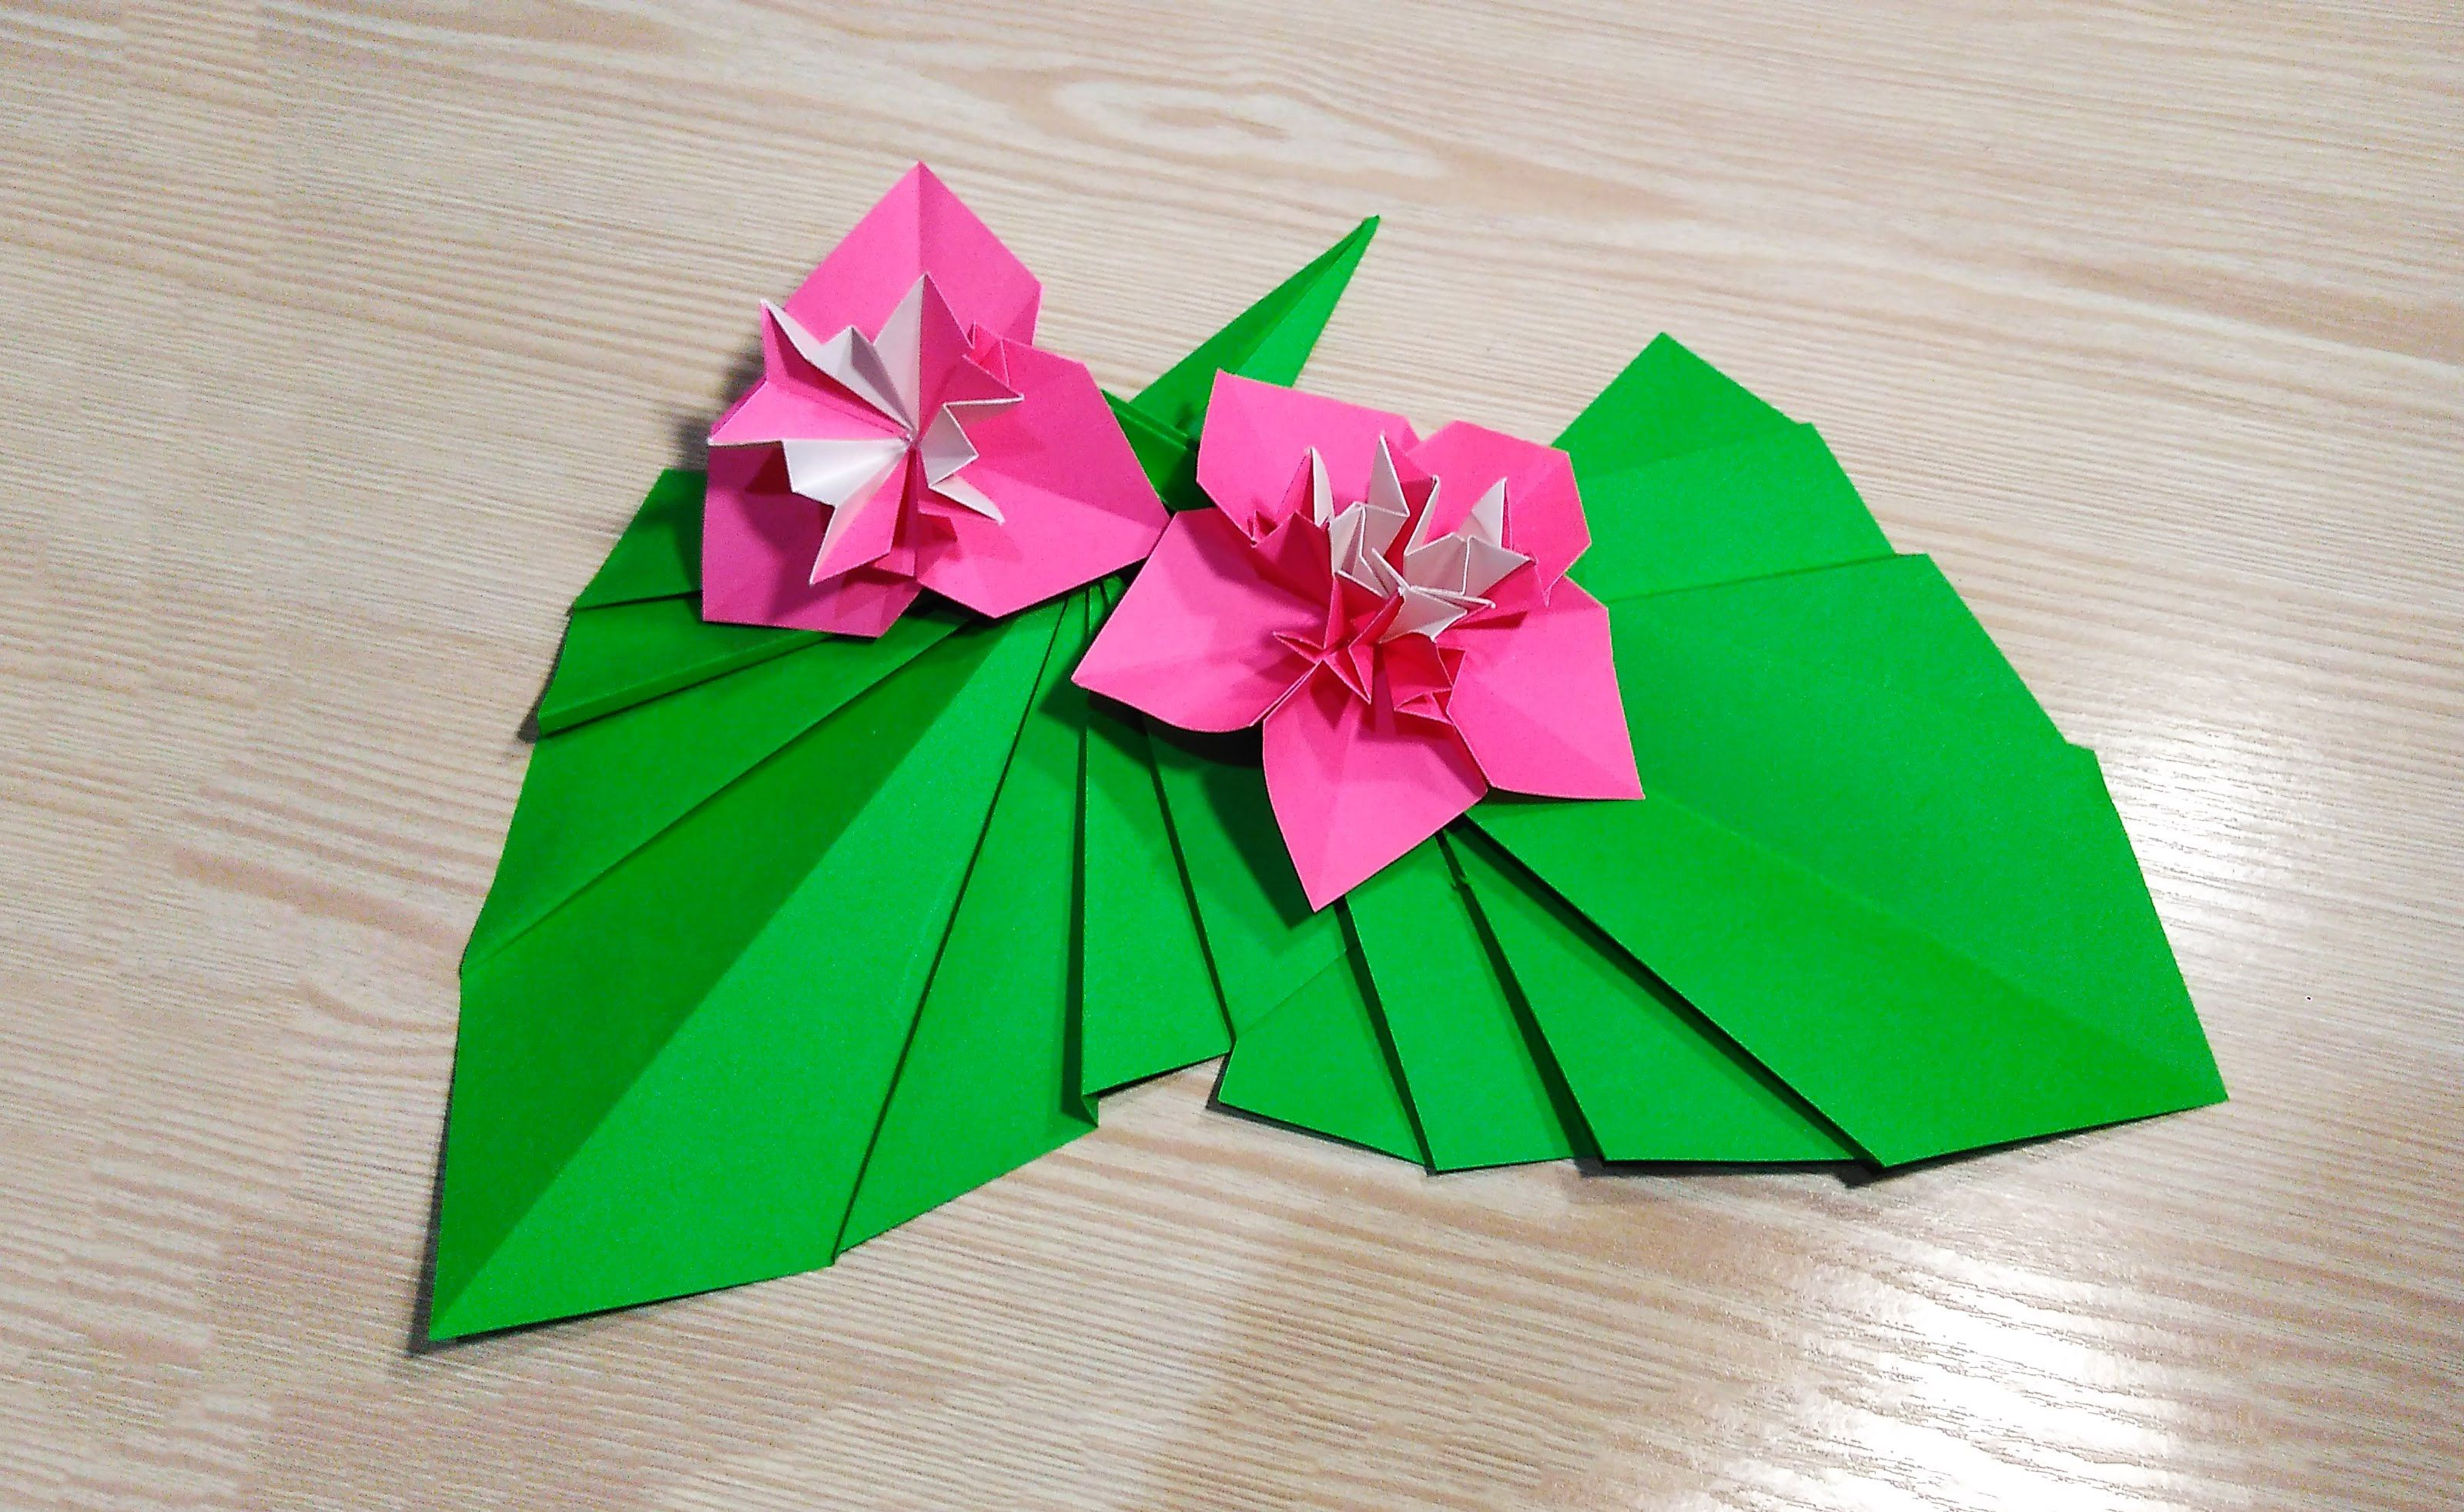 Origami leaf for decor easy way to decorate your room origami origami leaf designed by z sonsyadlo with flowers ideas for christmas decoration newyear mightylinksfo